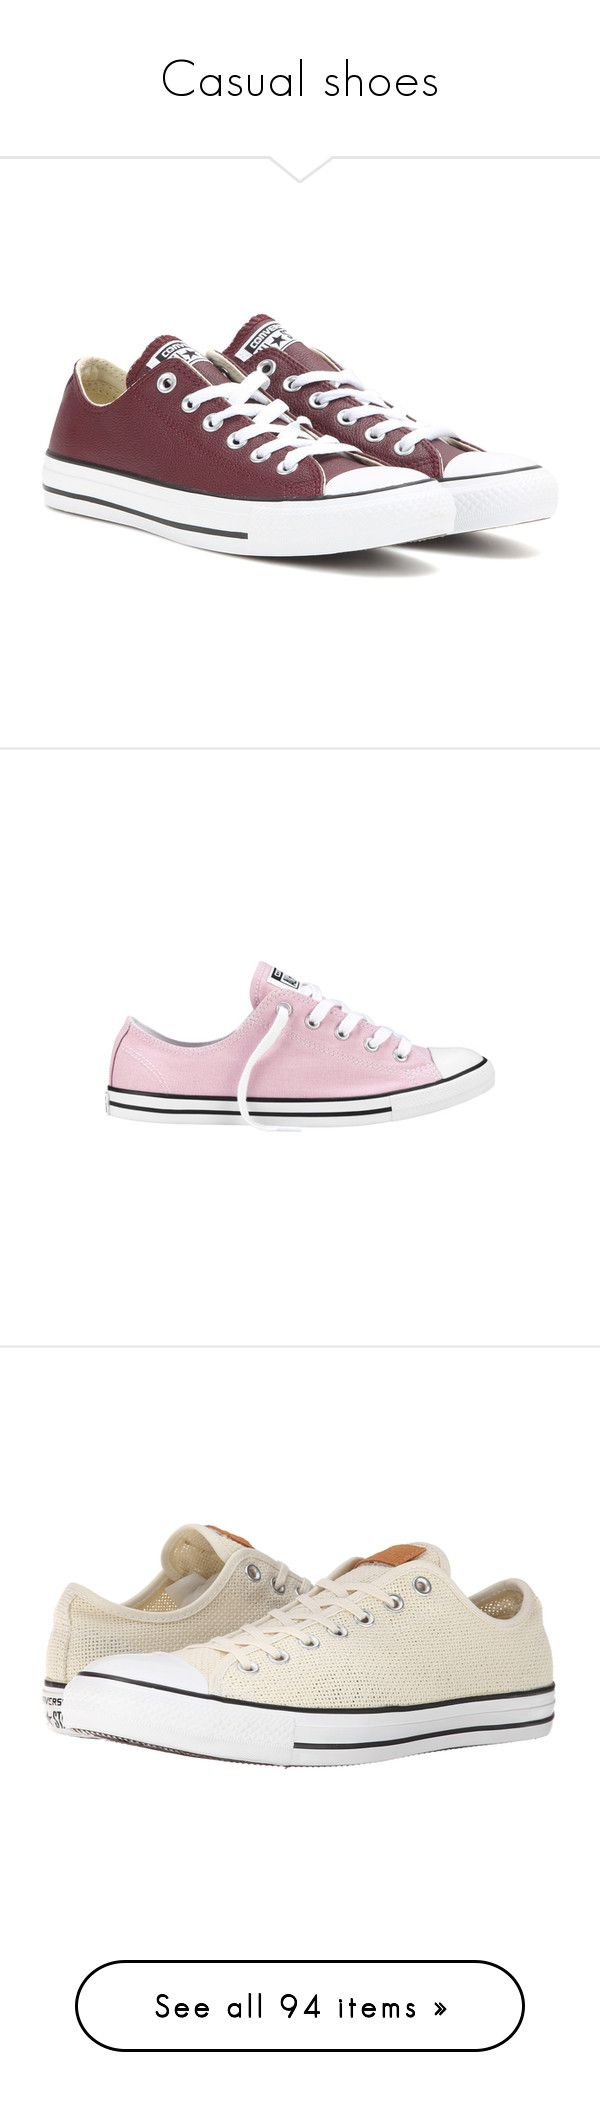 """""""Casual shoes"""" by loisanne ❤ liked on Polyvore featuring shoes, sneakers, converse, zapatos, 18. converse., red, converse shoes, leather shoes, converse sneakers and red leather sneakers"""